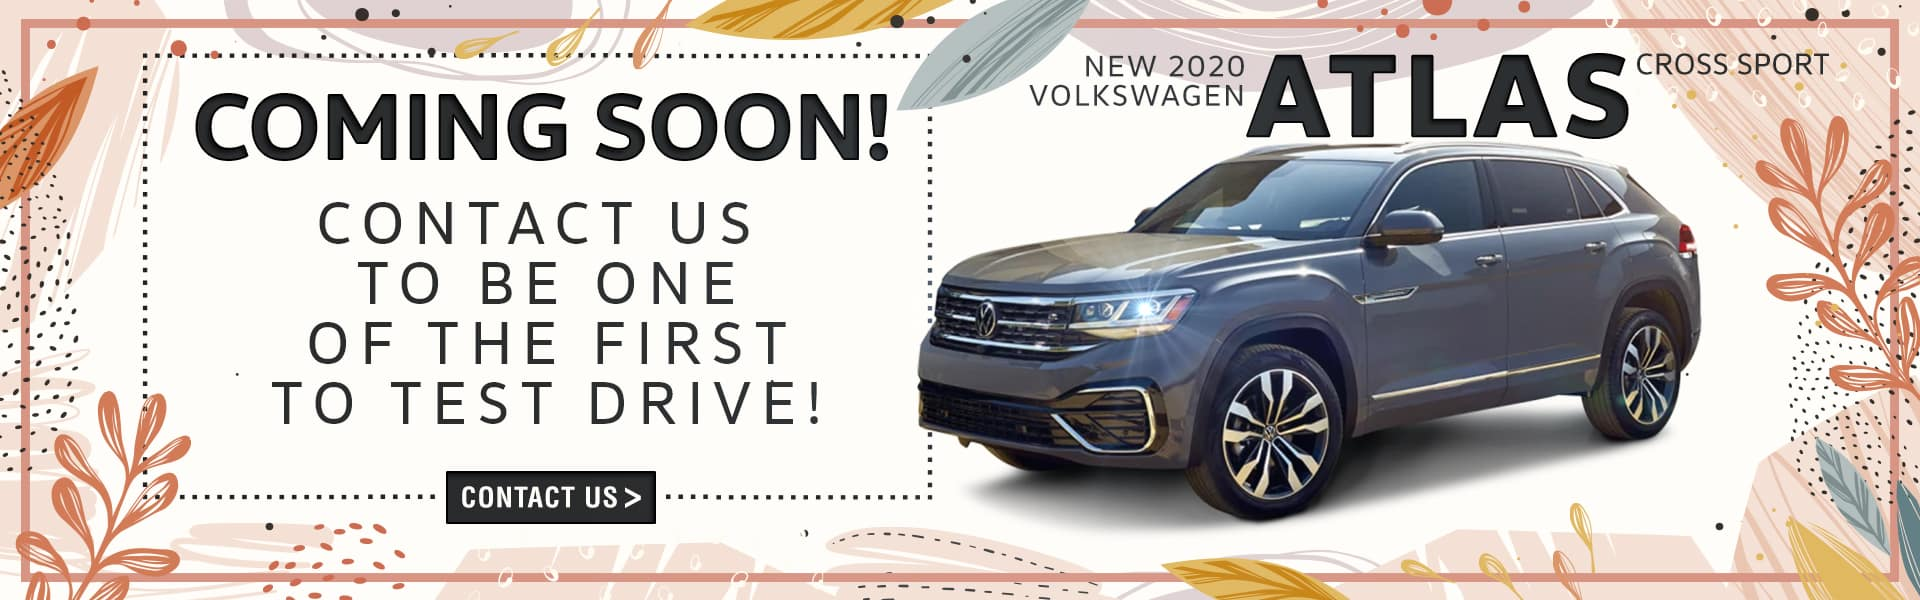 New 2020 Volkswagen Atlas Cross Sport | Coming Soon! Contact Us To Be One Of The First To Test Drive!